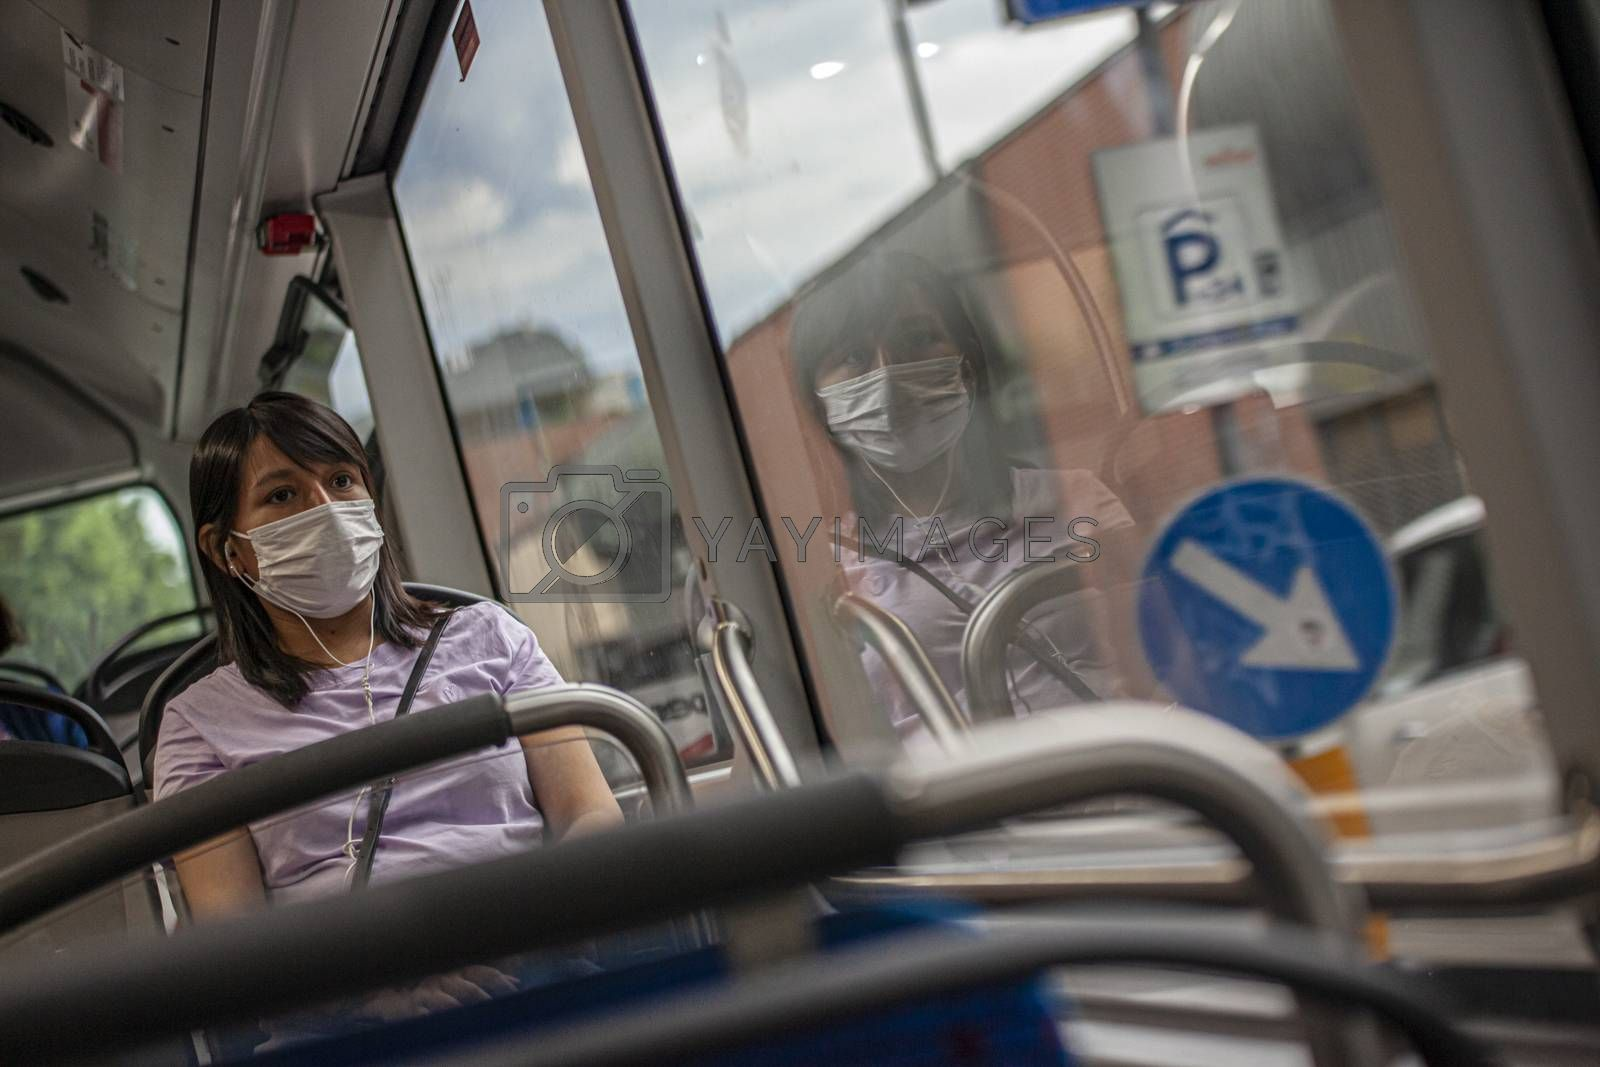 BOLOGNA, ITALY 17 JUNE 2020: Girl in the bus with medical mask during Covid quarantine